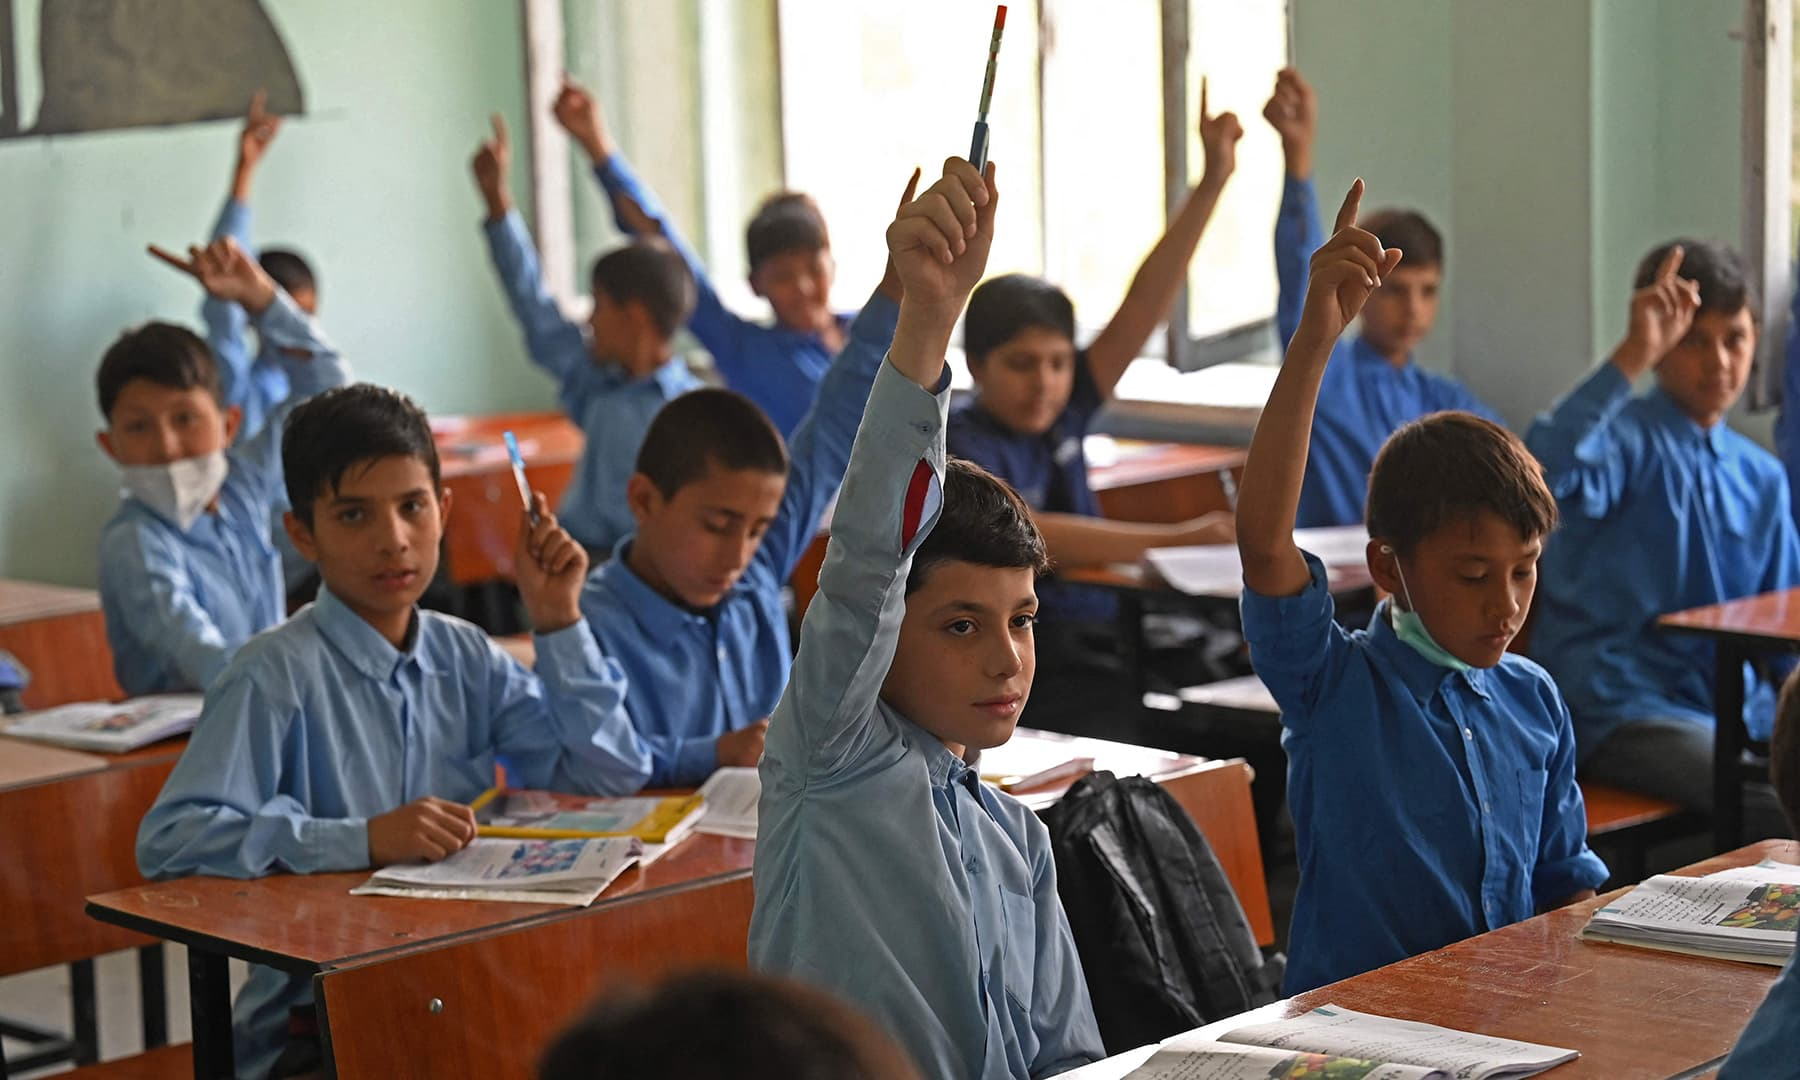 Students attend their class at a government middle school in Kabul on August 30. — AFP